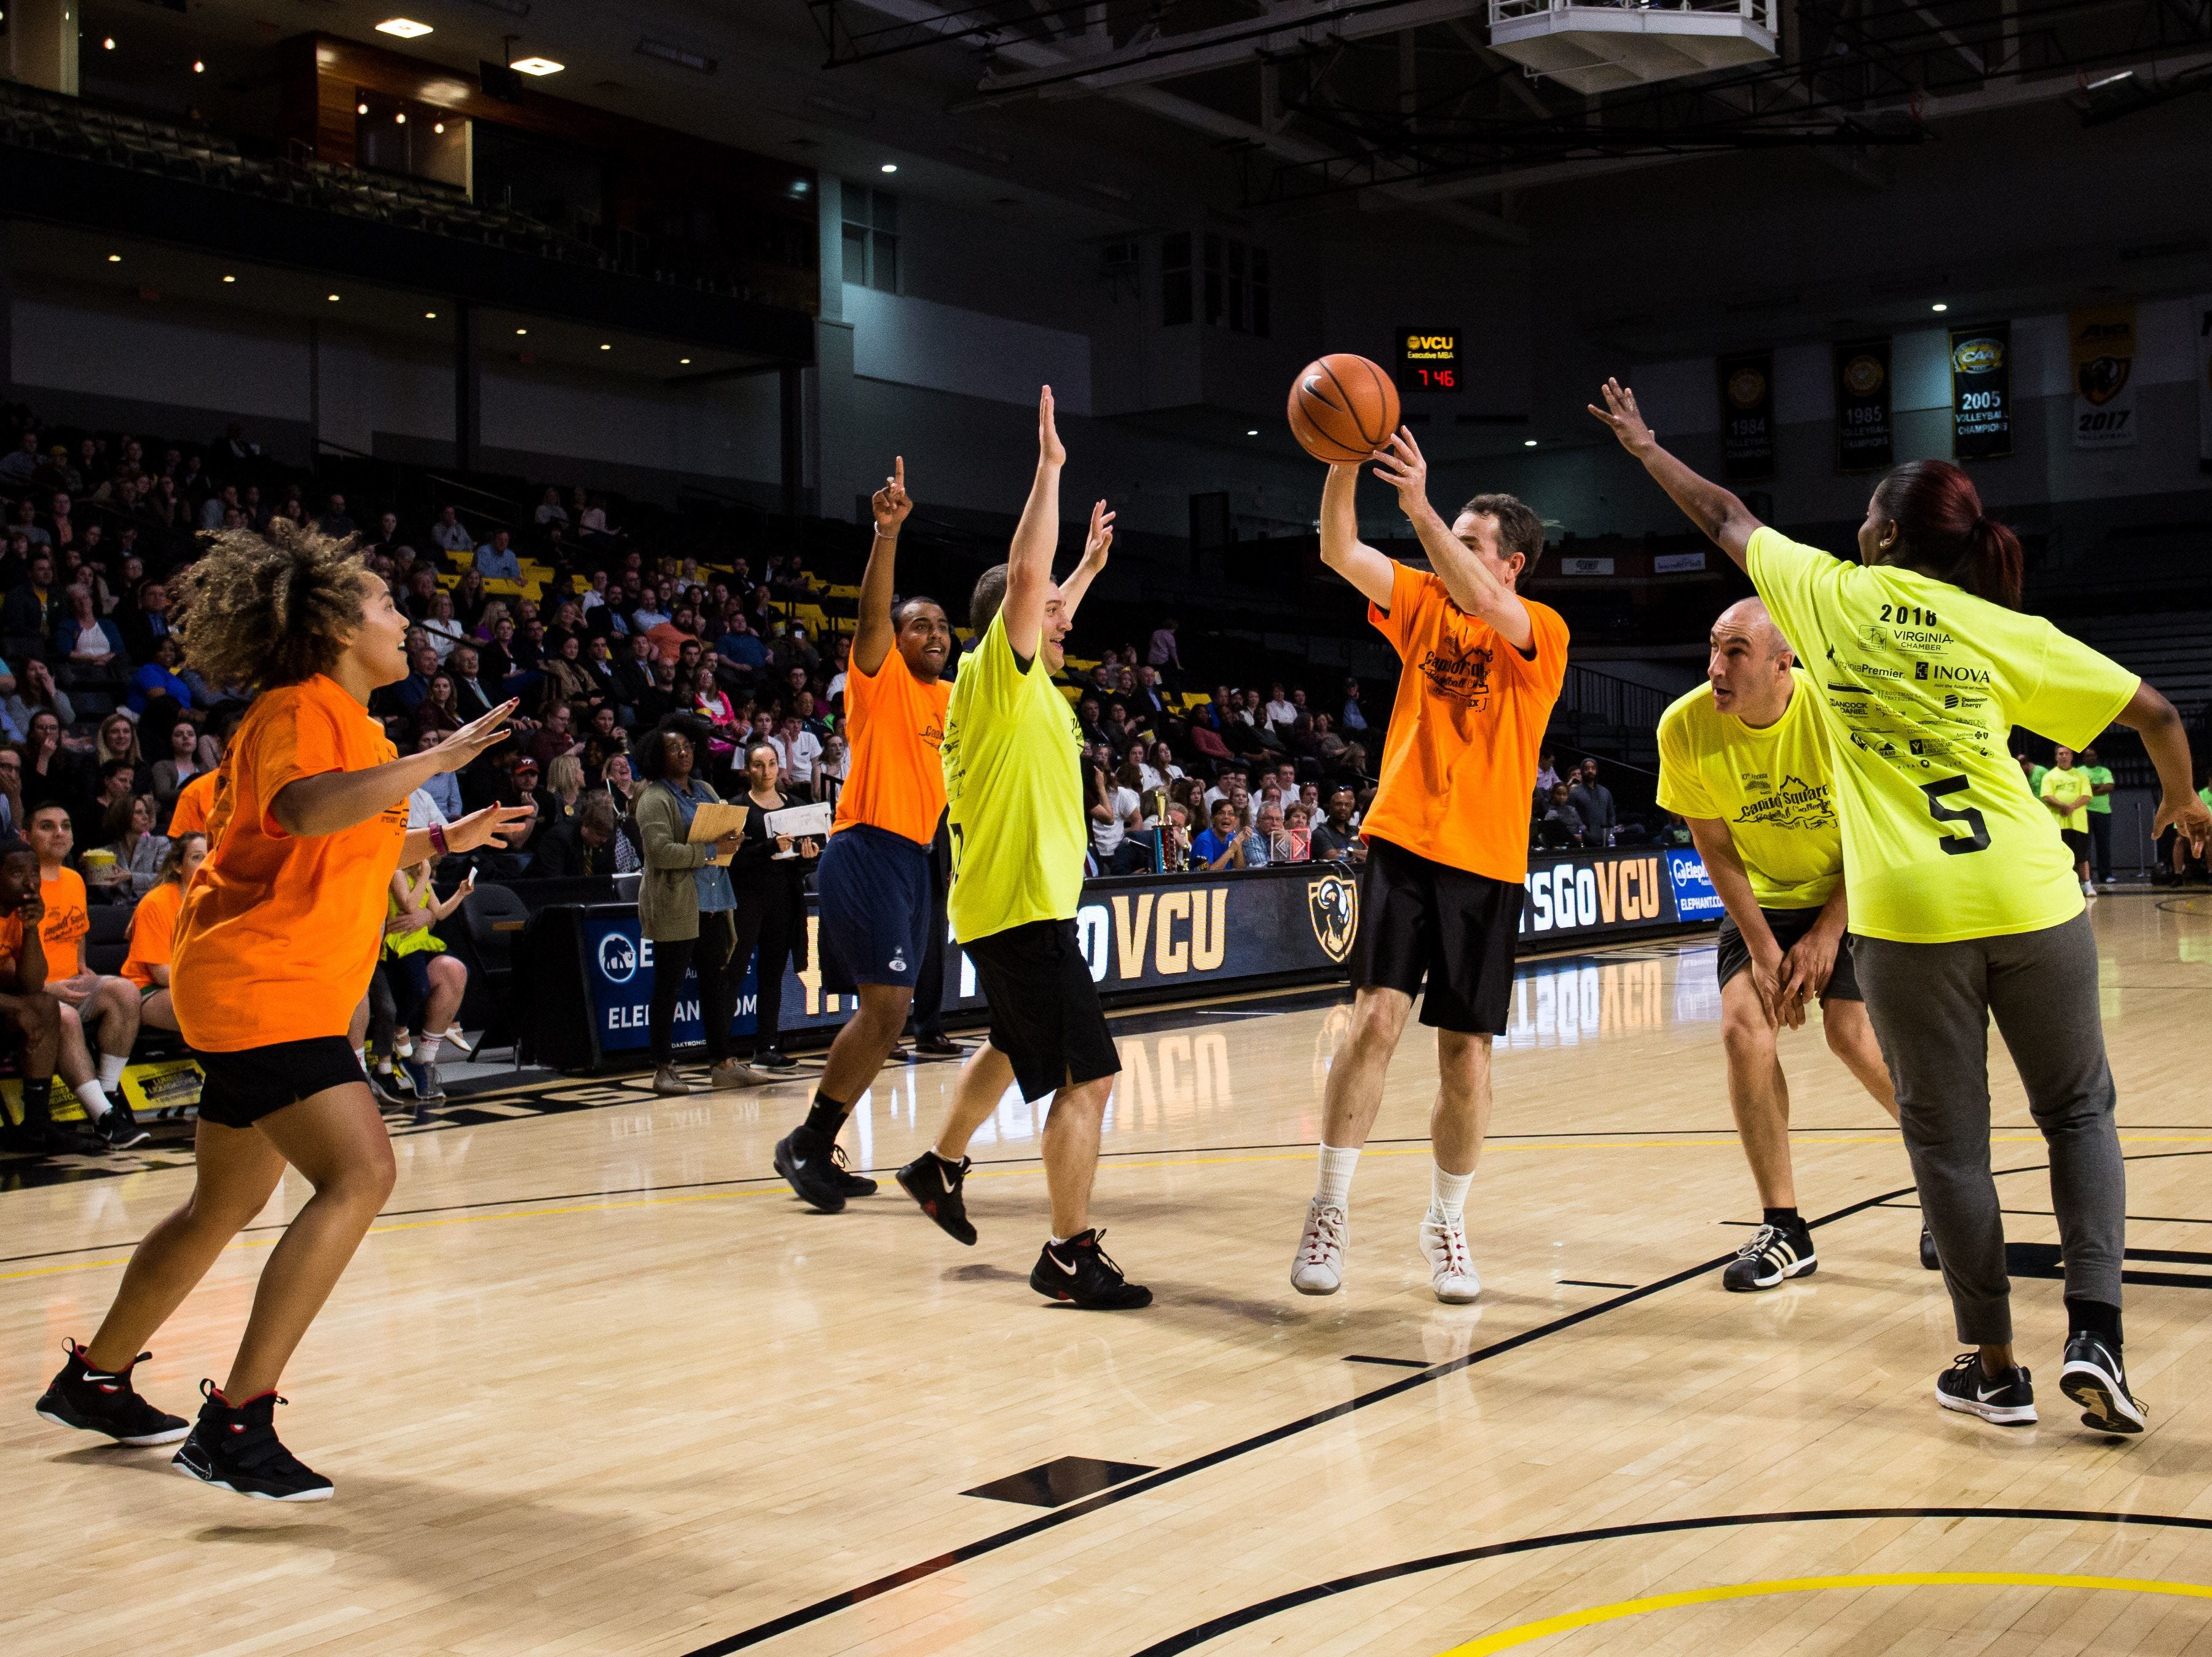 Gov. Ralph Northam in action during annual Massey Capitol Classic Challenge basketball game in Richmond, Virginia.